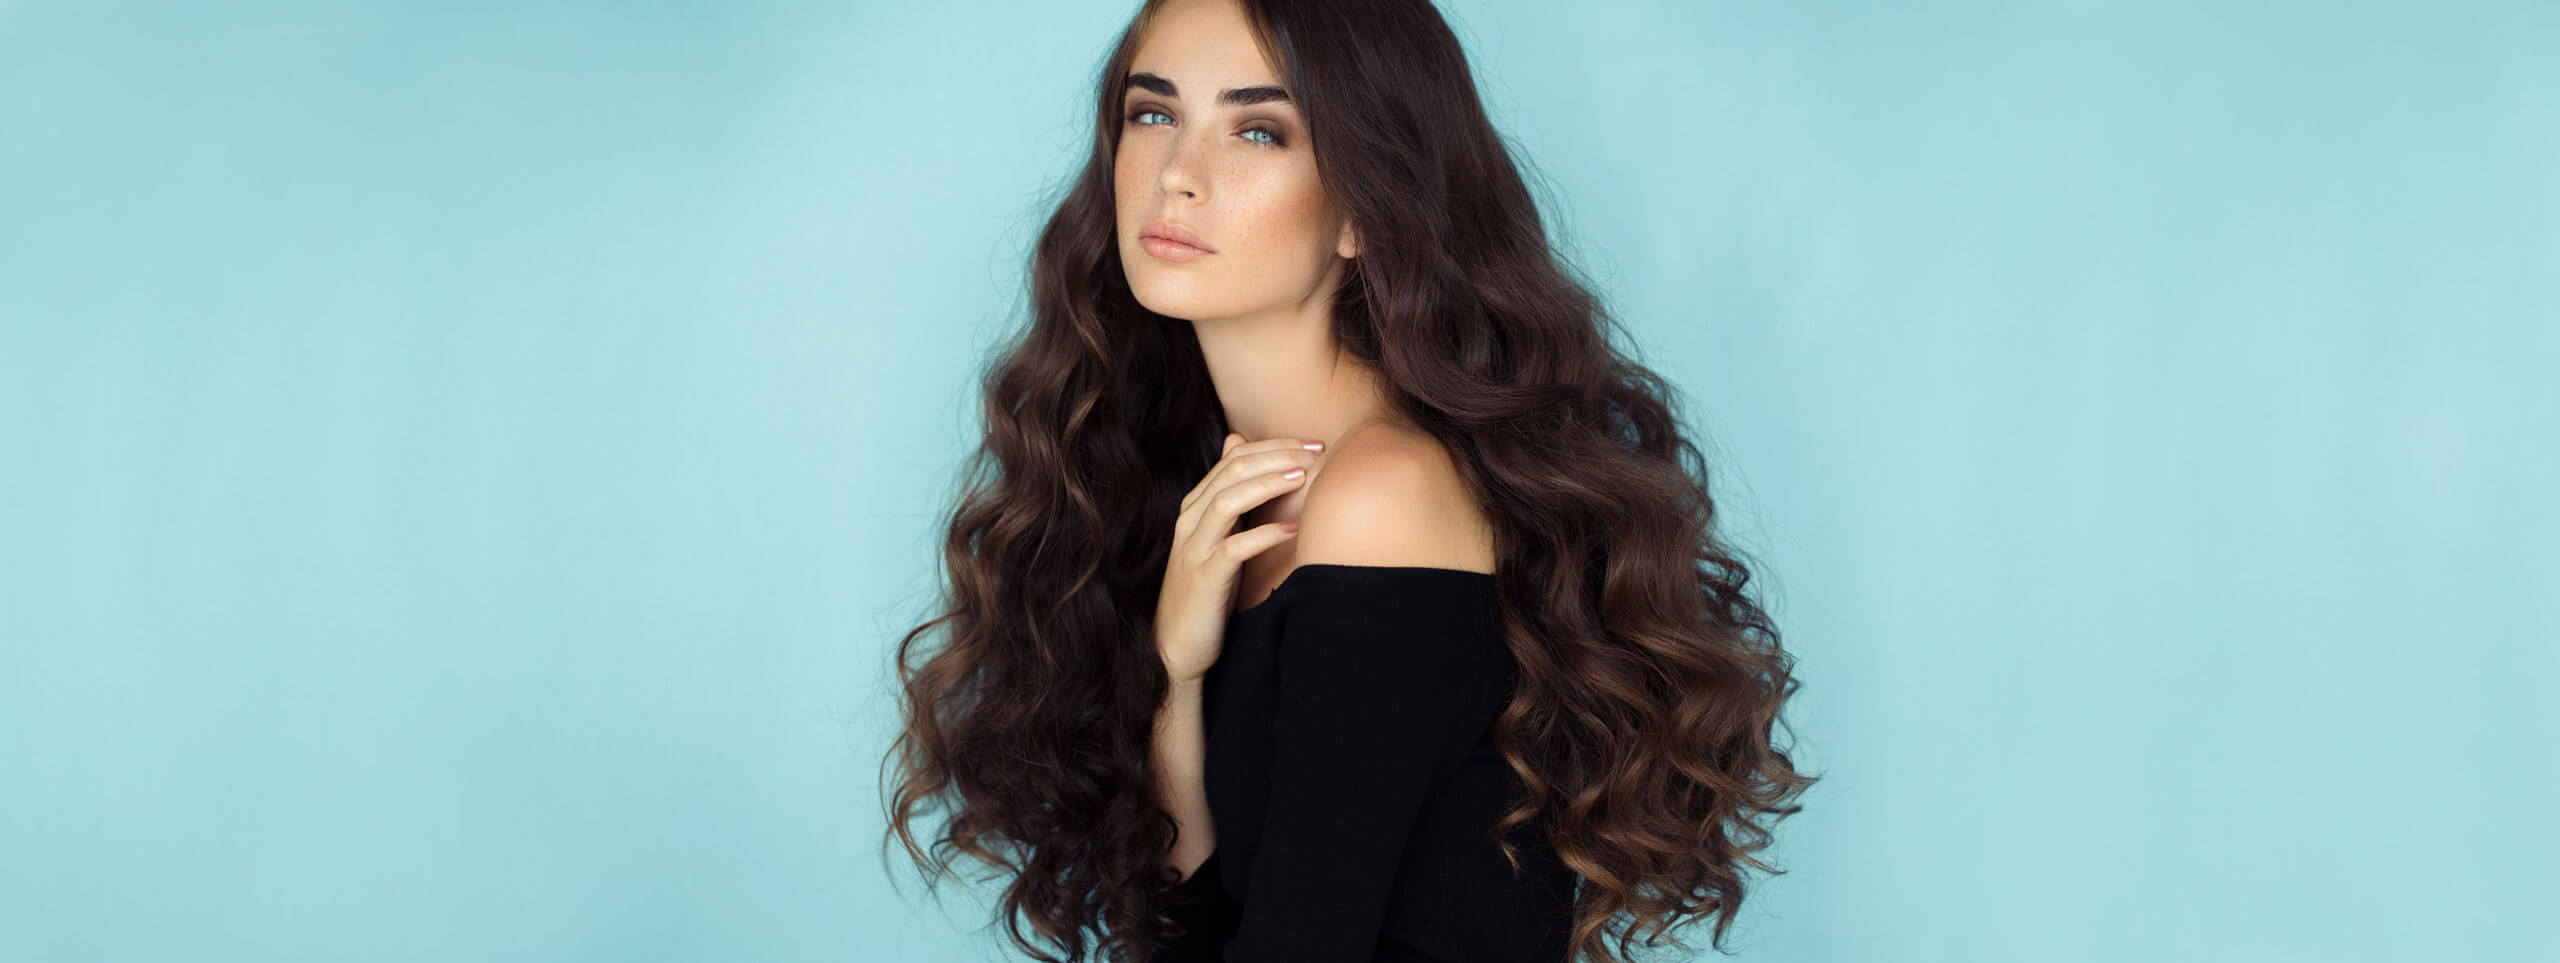 Woman with long naturally curly hairstyle